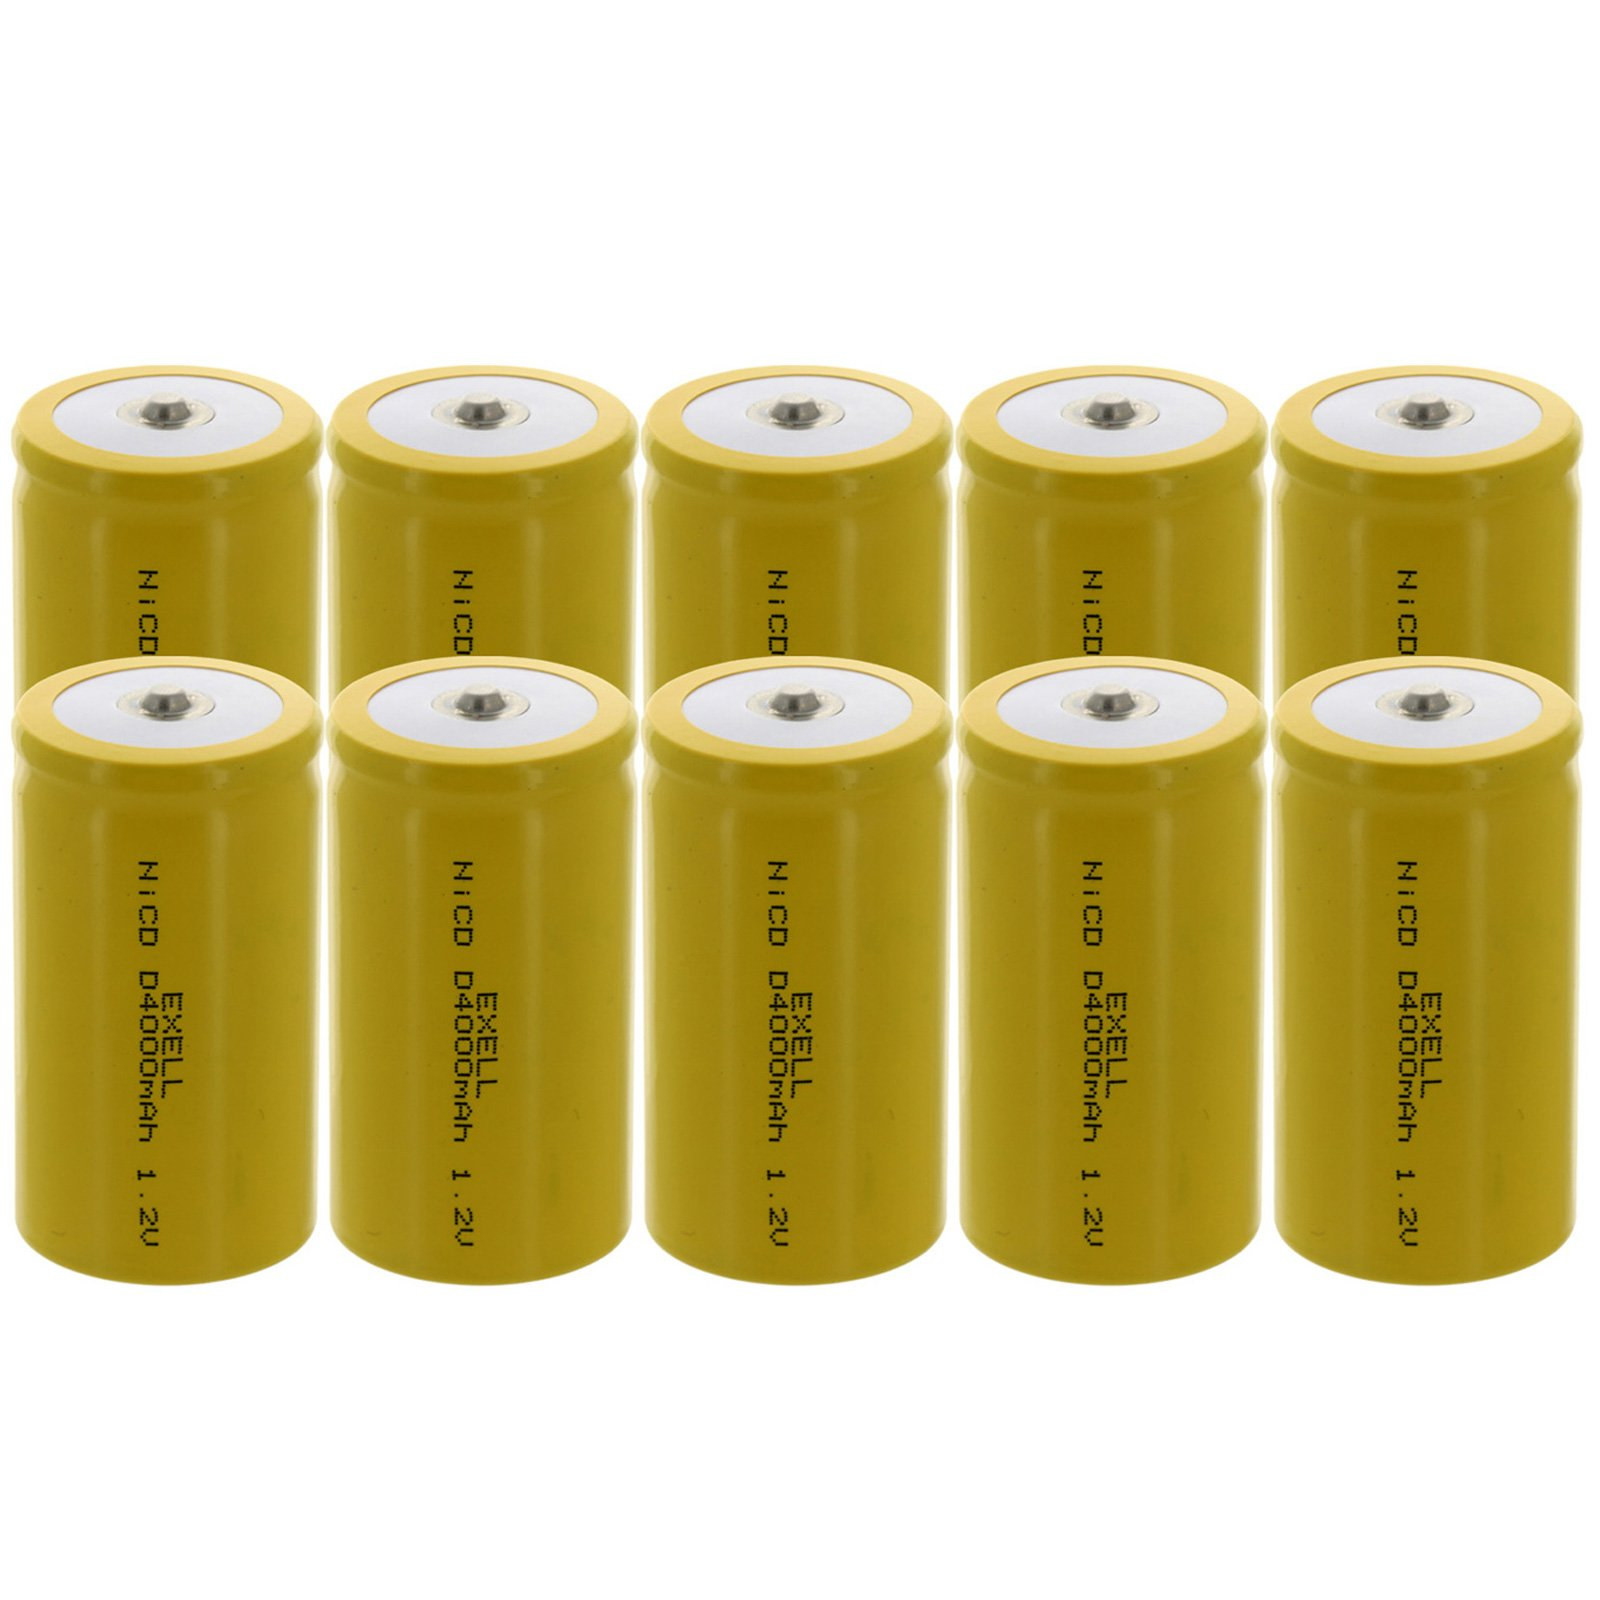 10x Exell D Size 1.2V 4000mAh NiCD Button Top Rechargeable Batteries for medical instruments/equipment, electric razors, toothbrushes, radio controlled devices, electric tools by Exell Battery